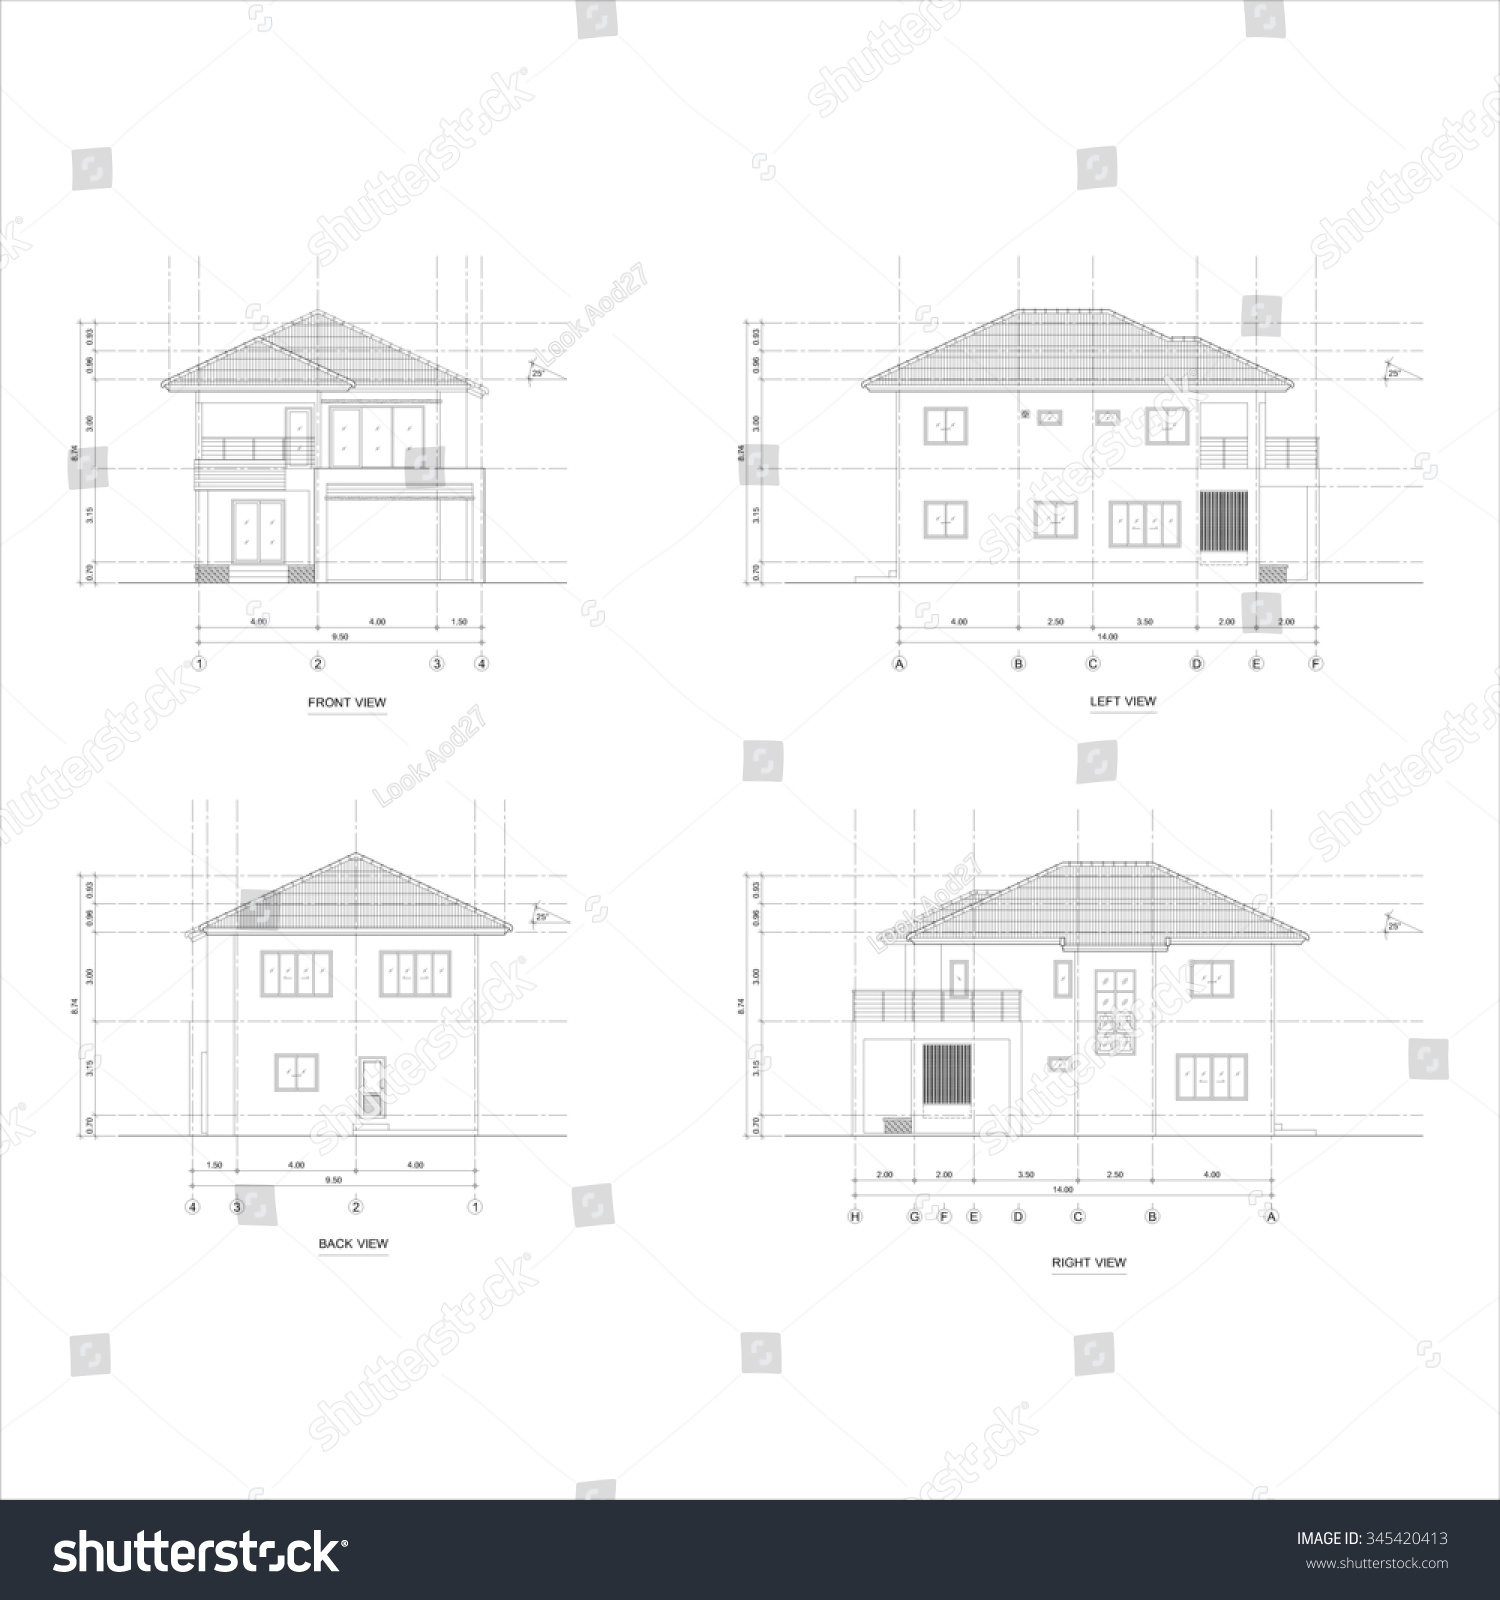 Architect elevation drawing of two storey house